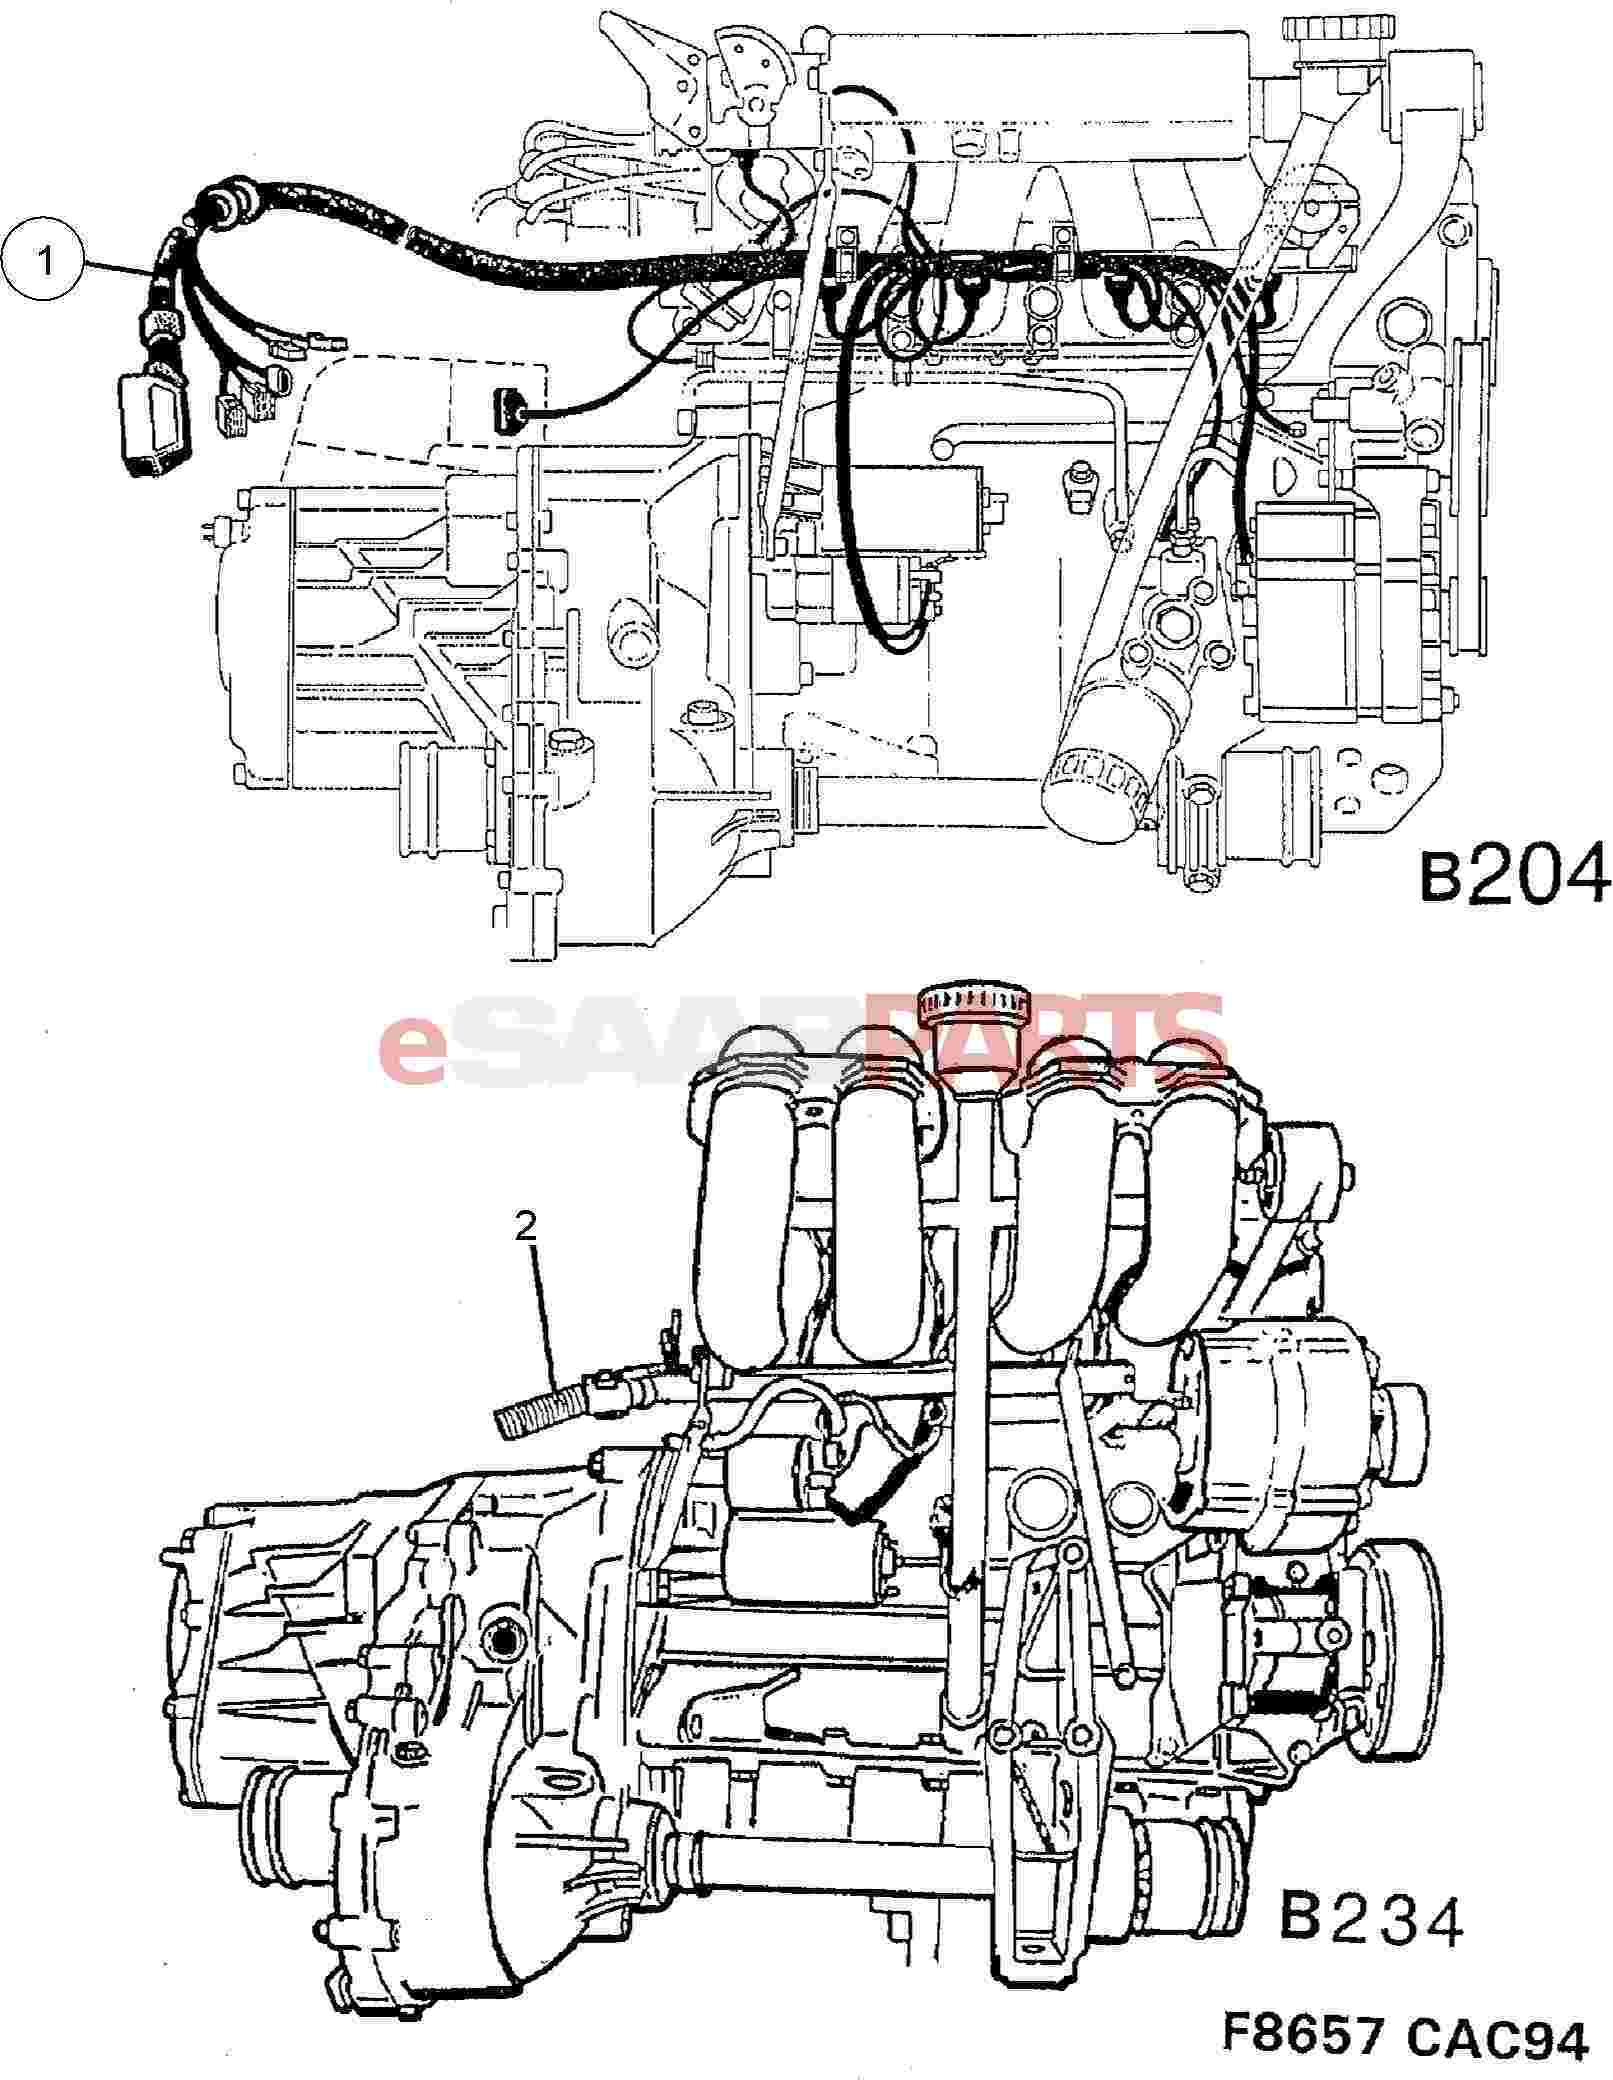 Saab B204 Wiring Diagram Schematic Diagrams 1997 900 Engine Introduction To Electrical Amplifier Esaabparts Com